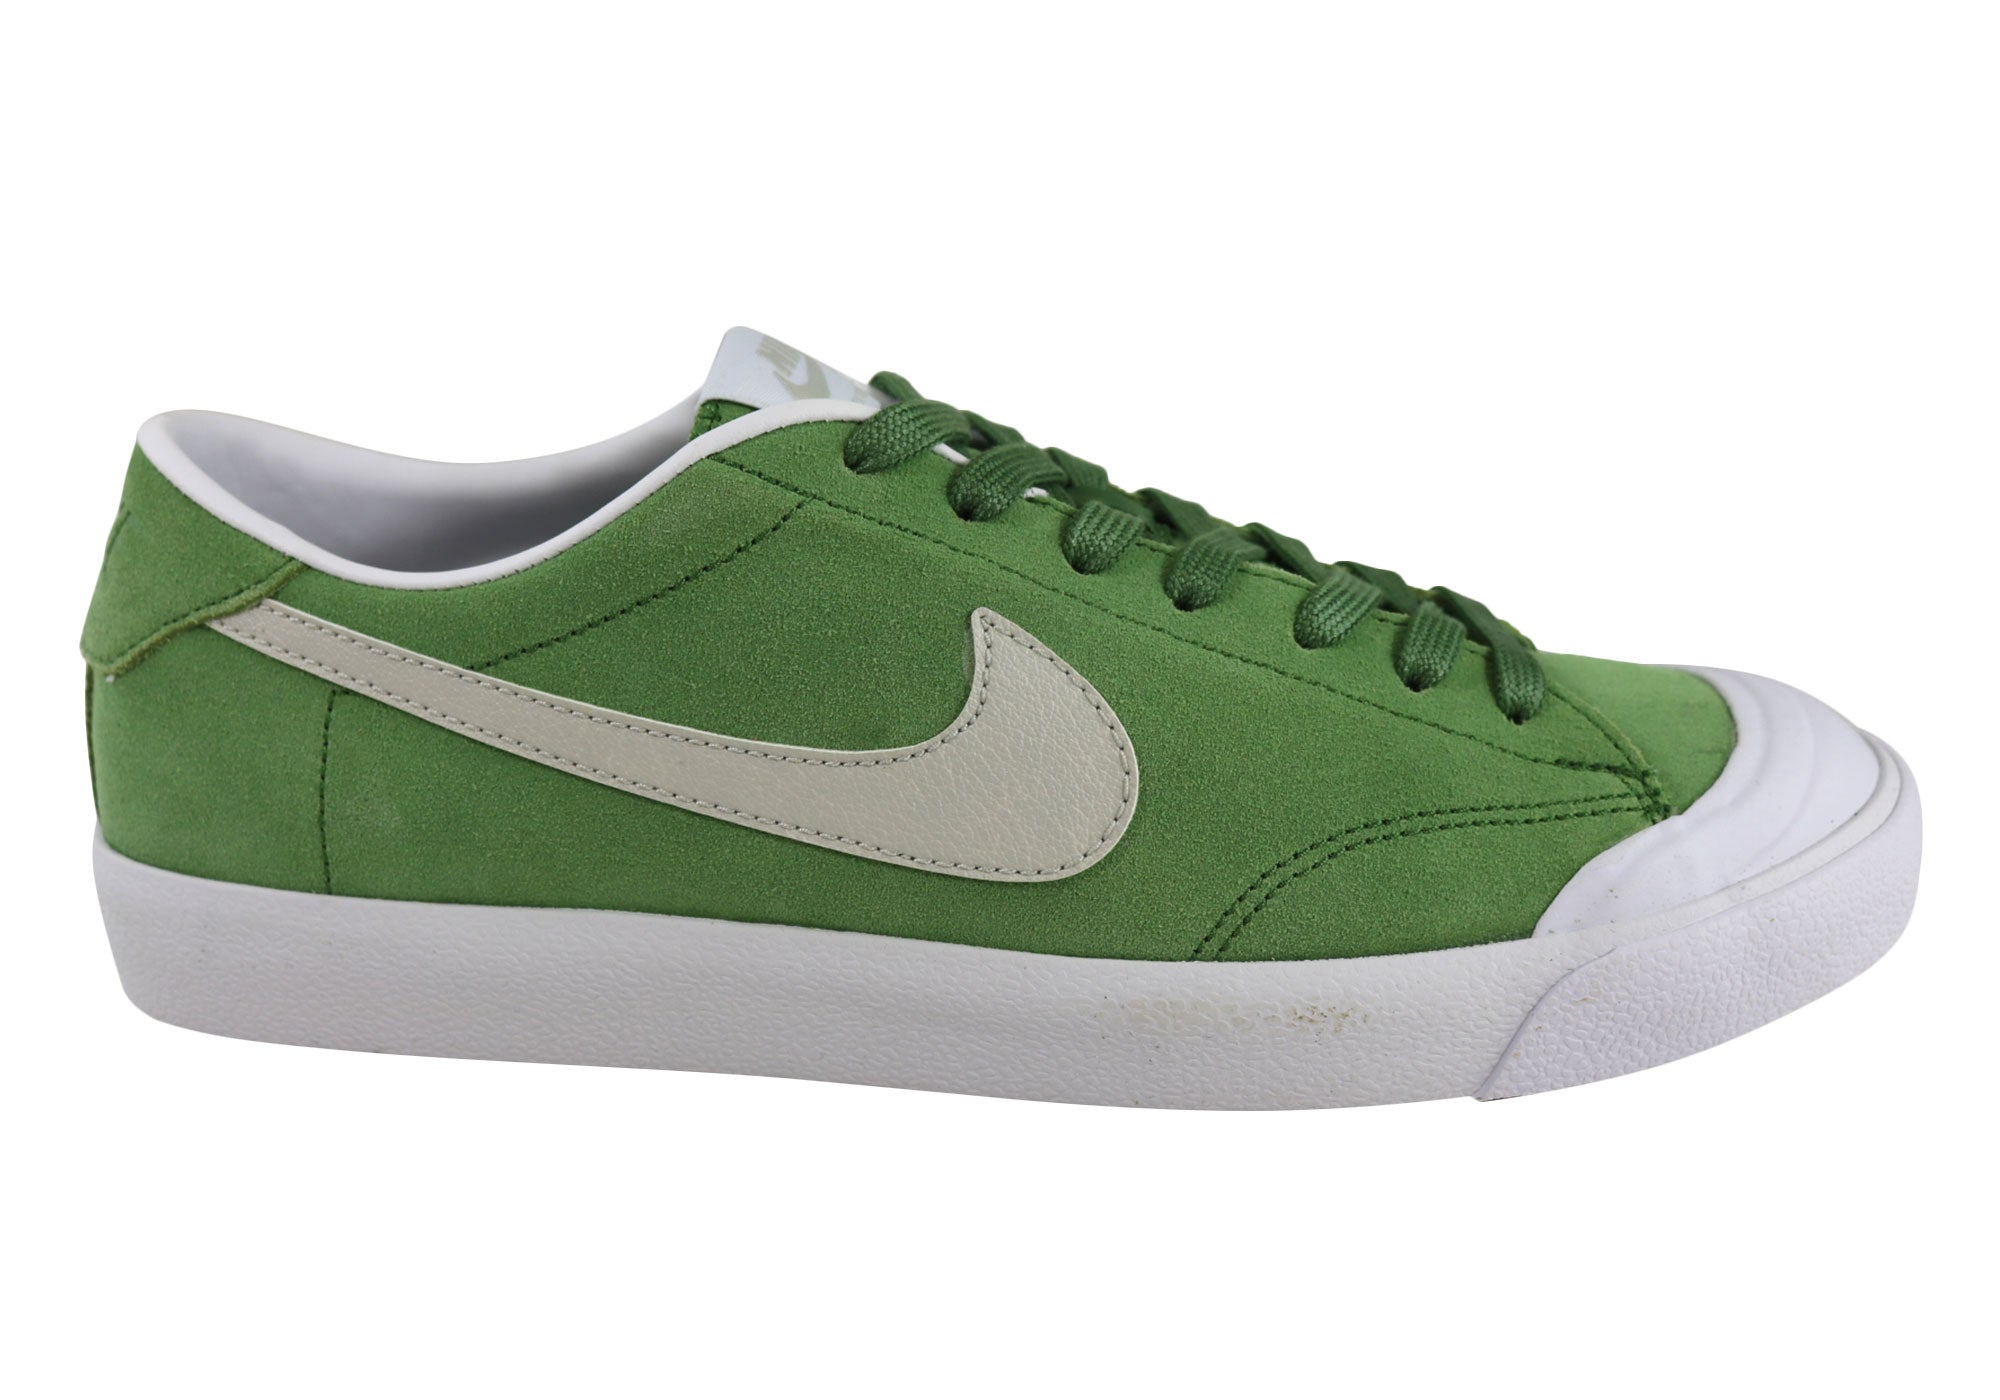 vacío Apuesta Hija  Nike SB Skate Board Mens Zoom All Court Ck Casual Suede Shoes | Brand House  Direct